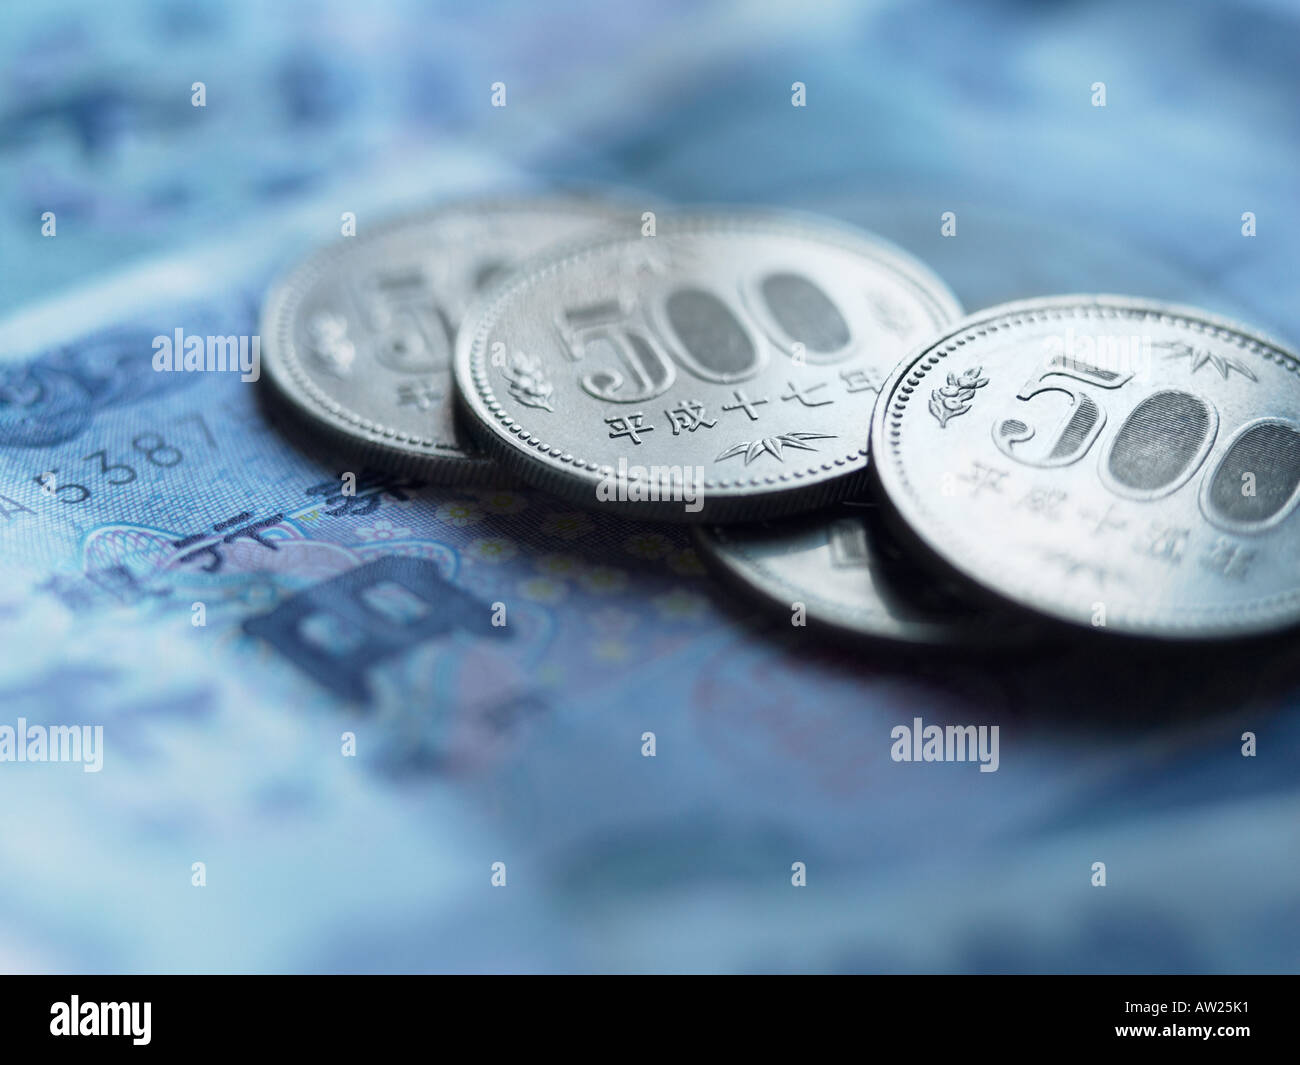 Yen coins and banknotes - Stock Image